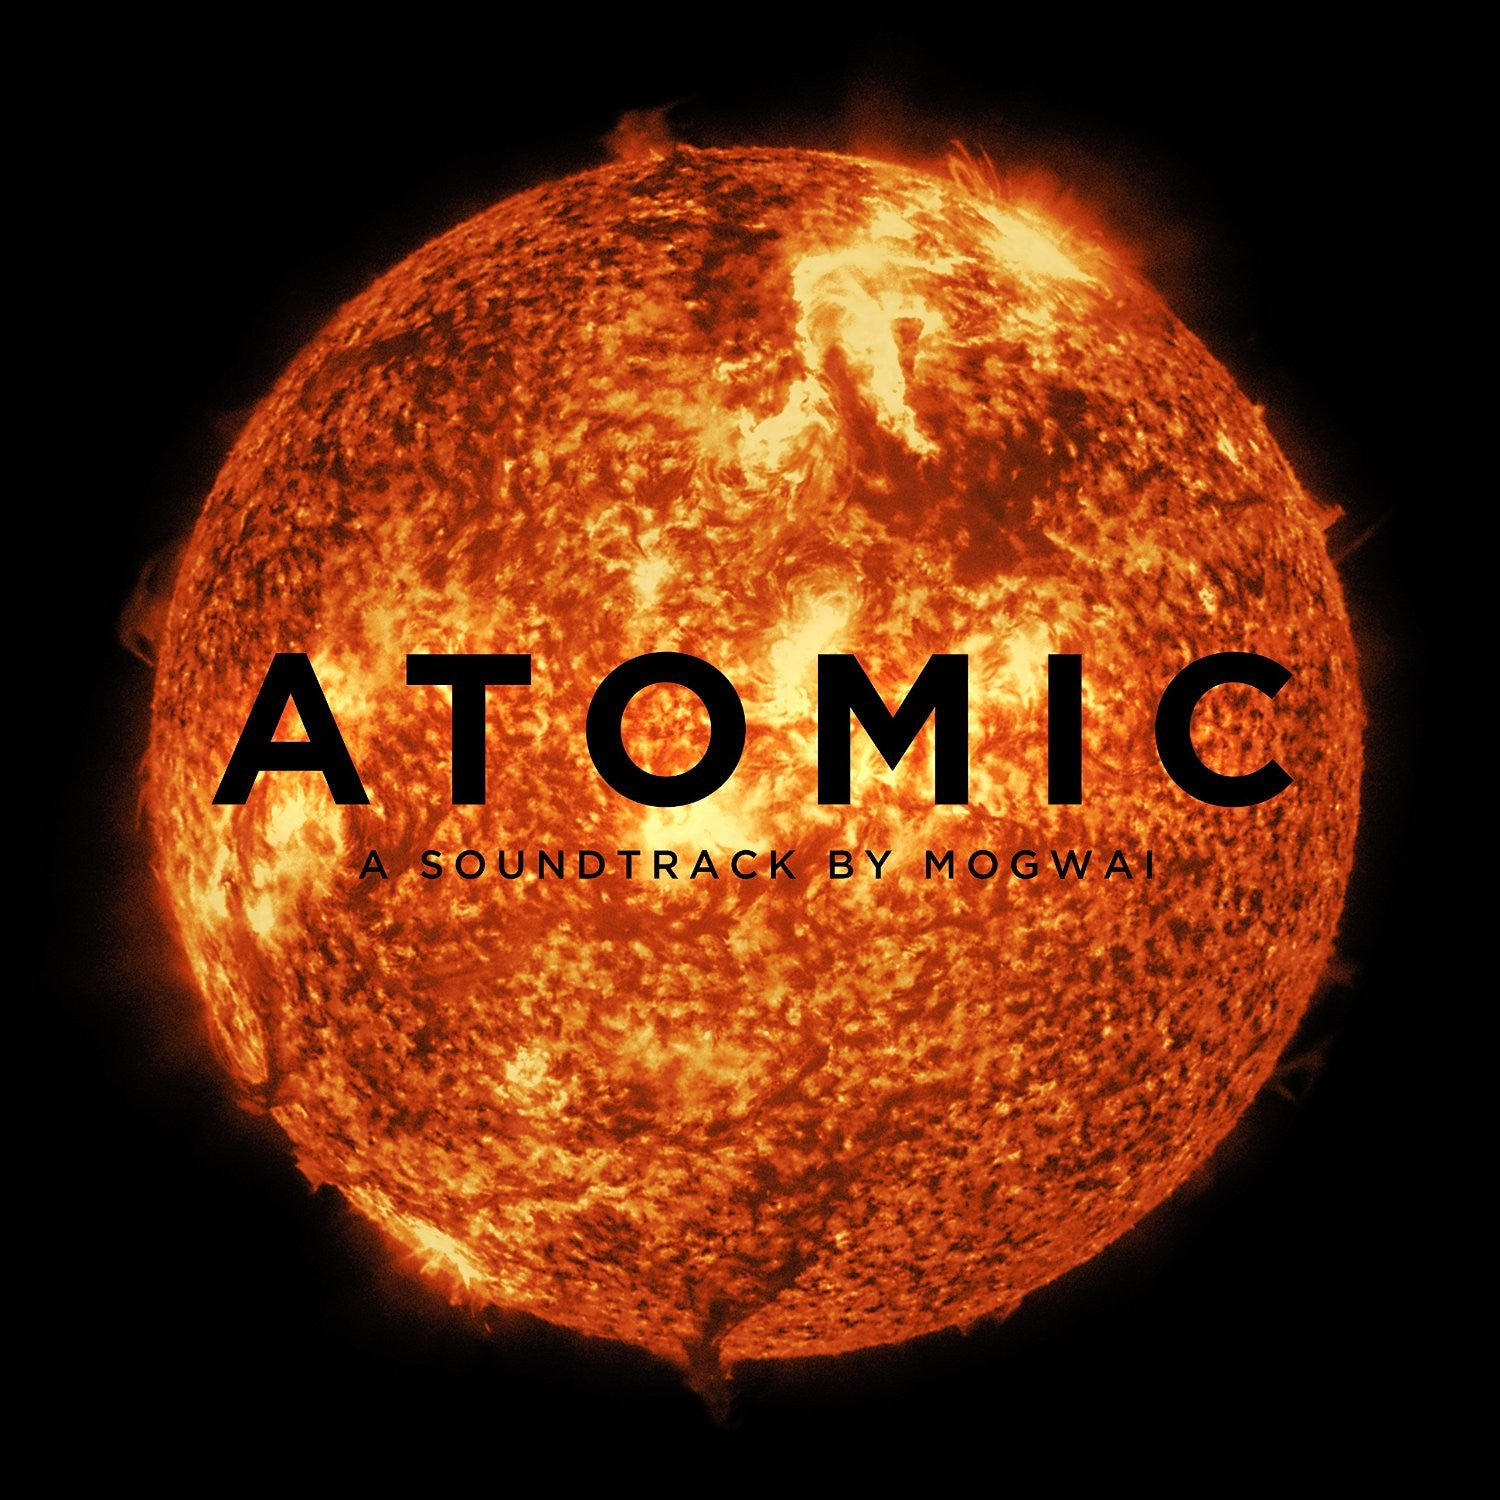 Mogwai - Atomic - New 2 Lp Record 2016 Temporary Residence USA Vinyl & Download - Soundtrack / Post Rock